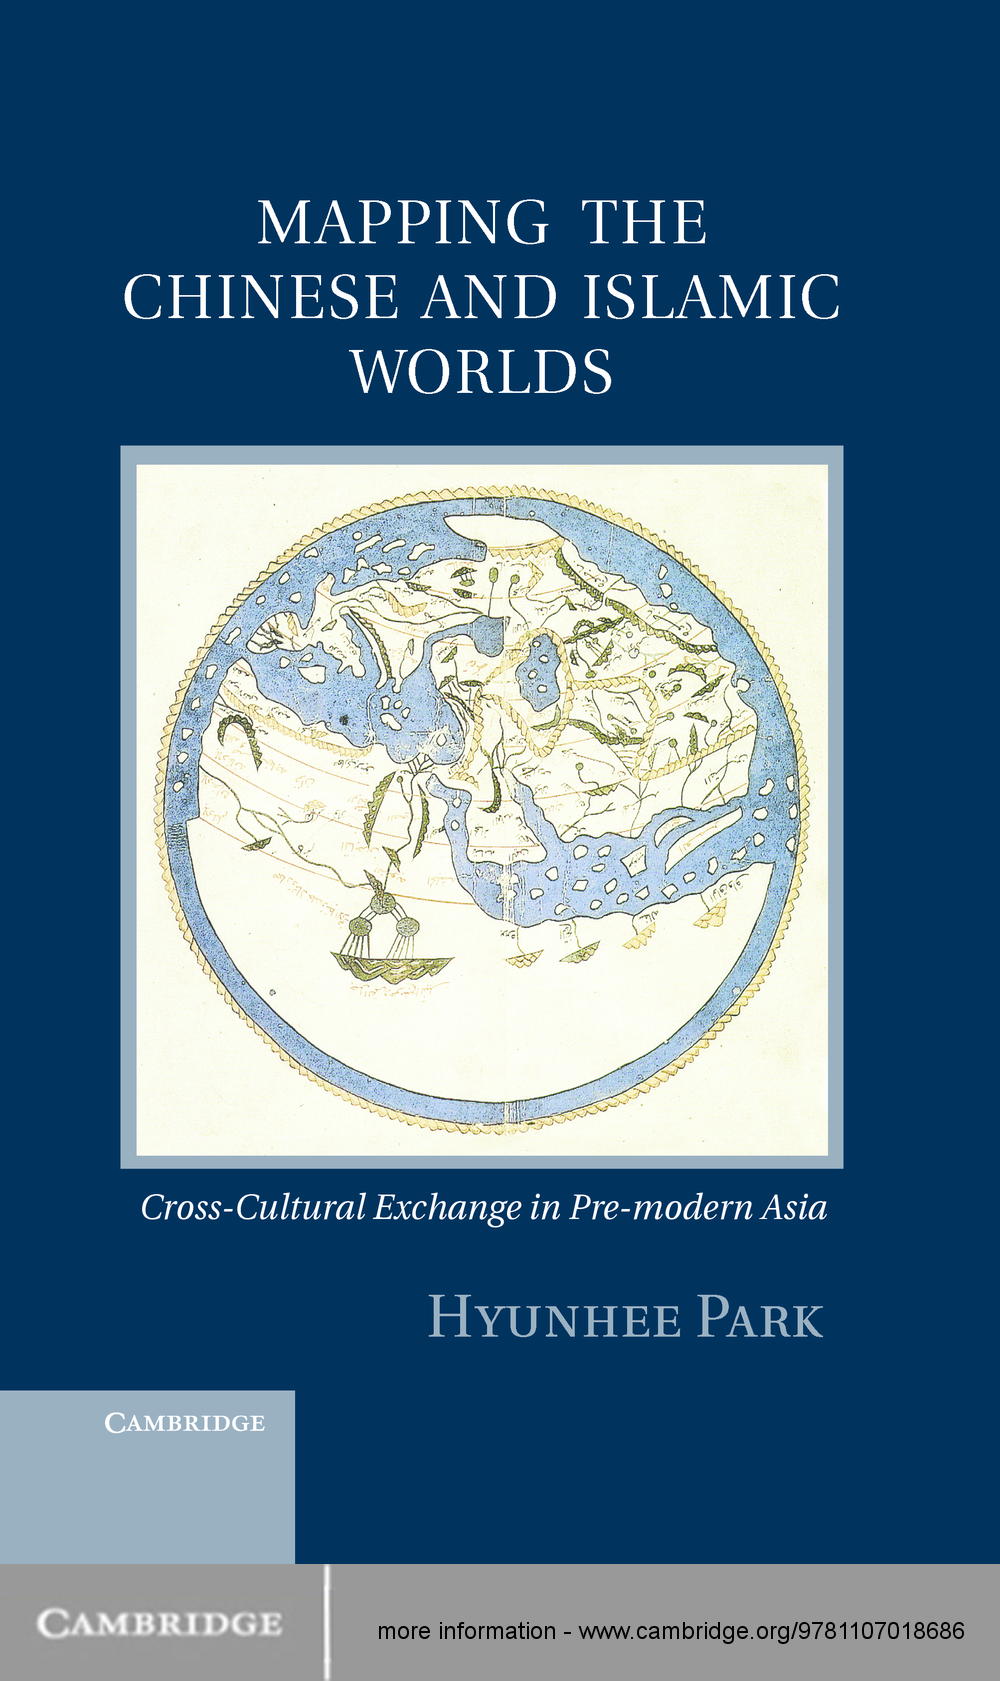 Mapping the Chinese and Islamic Worlds Cross-Cultural Exchange in Pre-Modern Asia